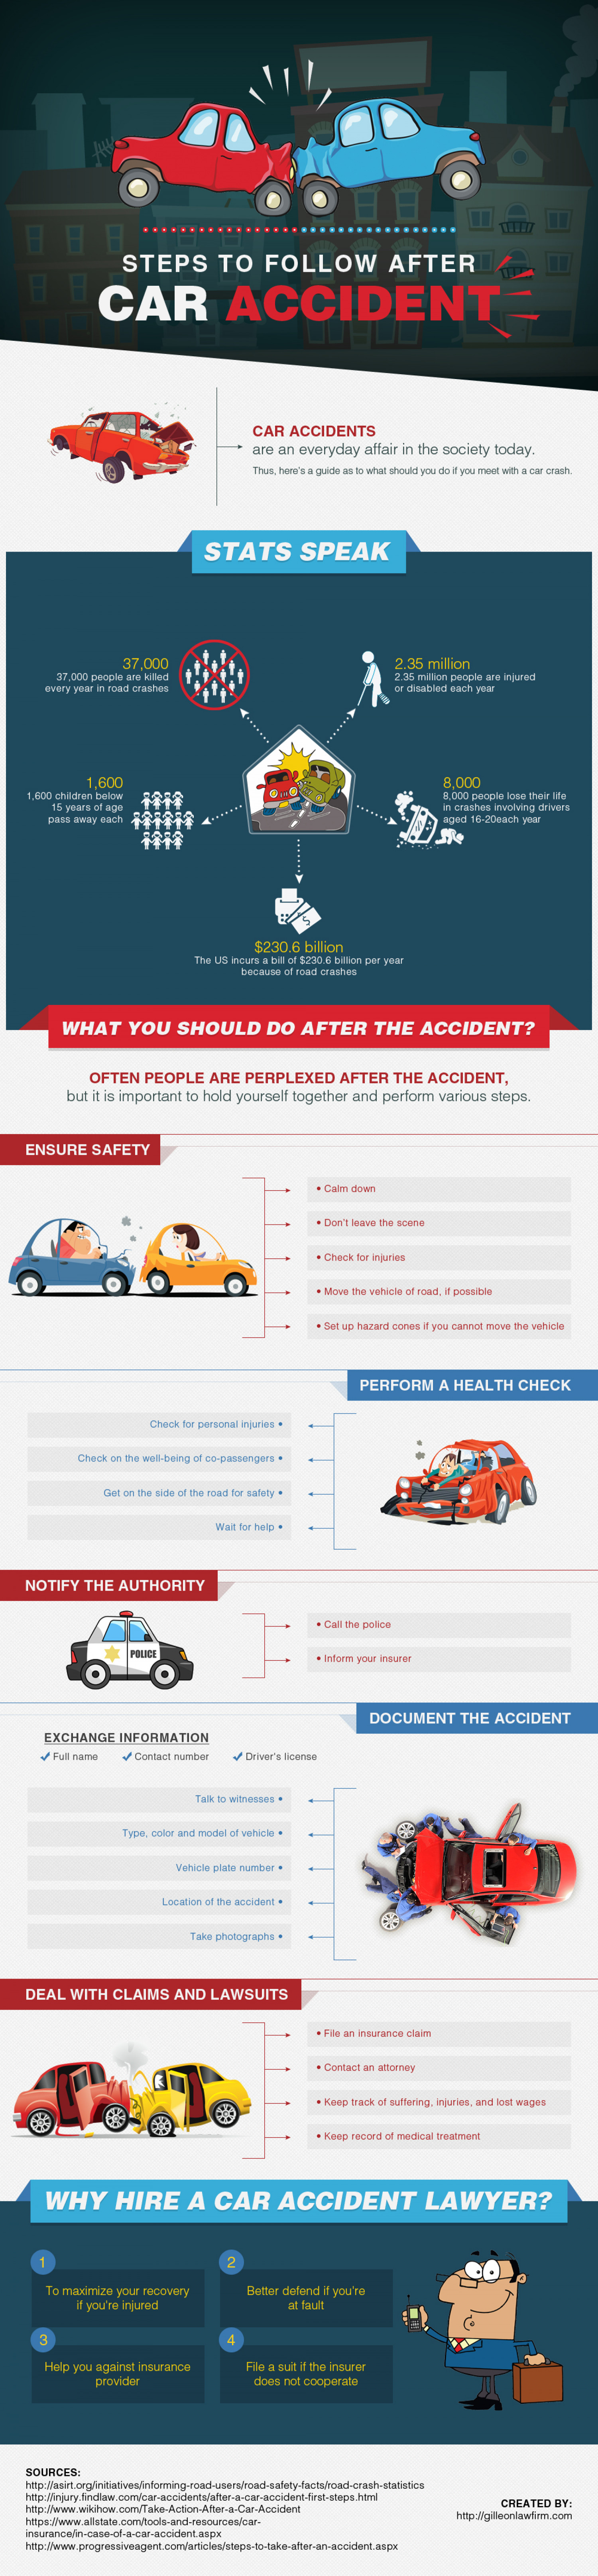 Steps to Follow After Car Accident Infographic